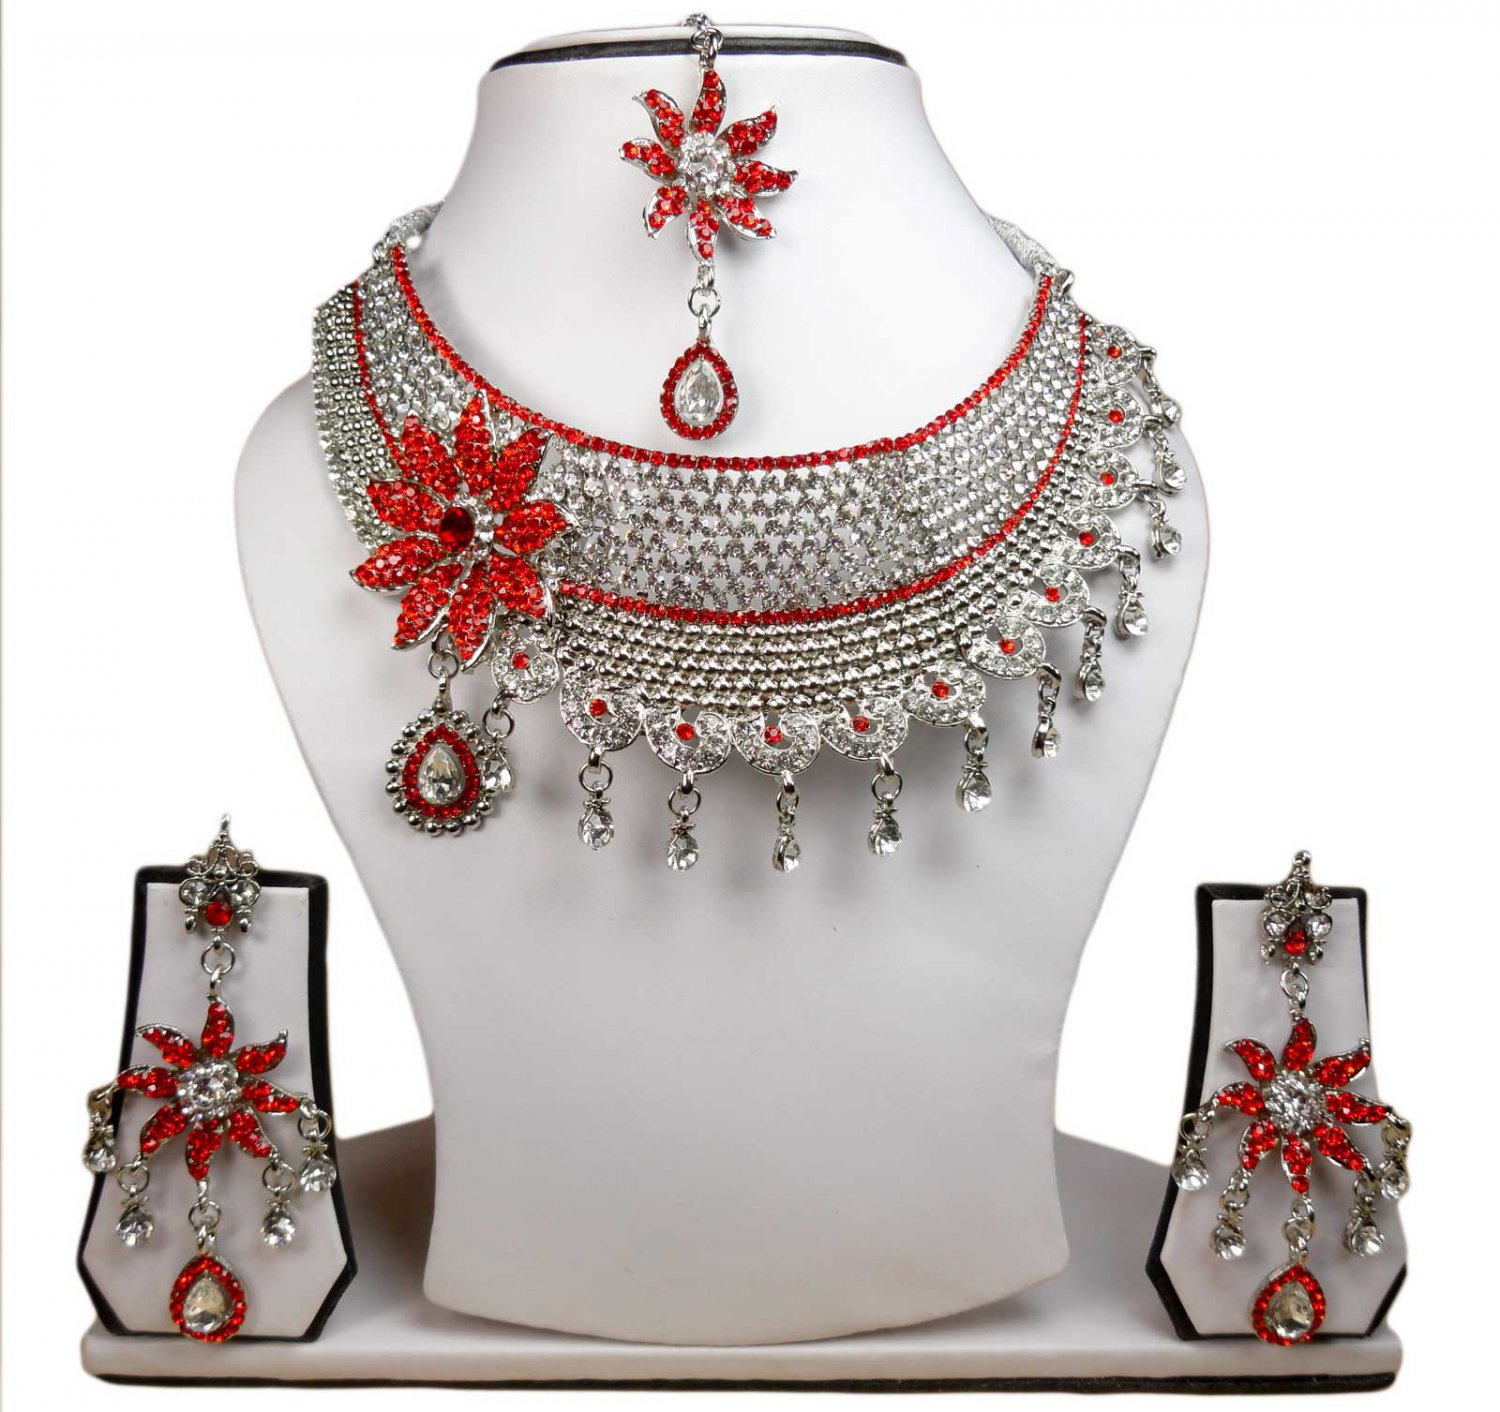 Silver Plated Stunning AD Pearl Jewelry Flower Styled Necklace Matching Earrings Set Maroon Color